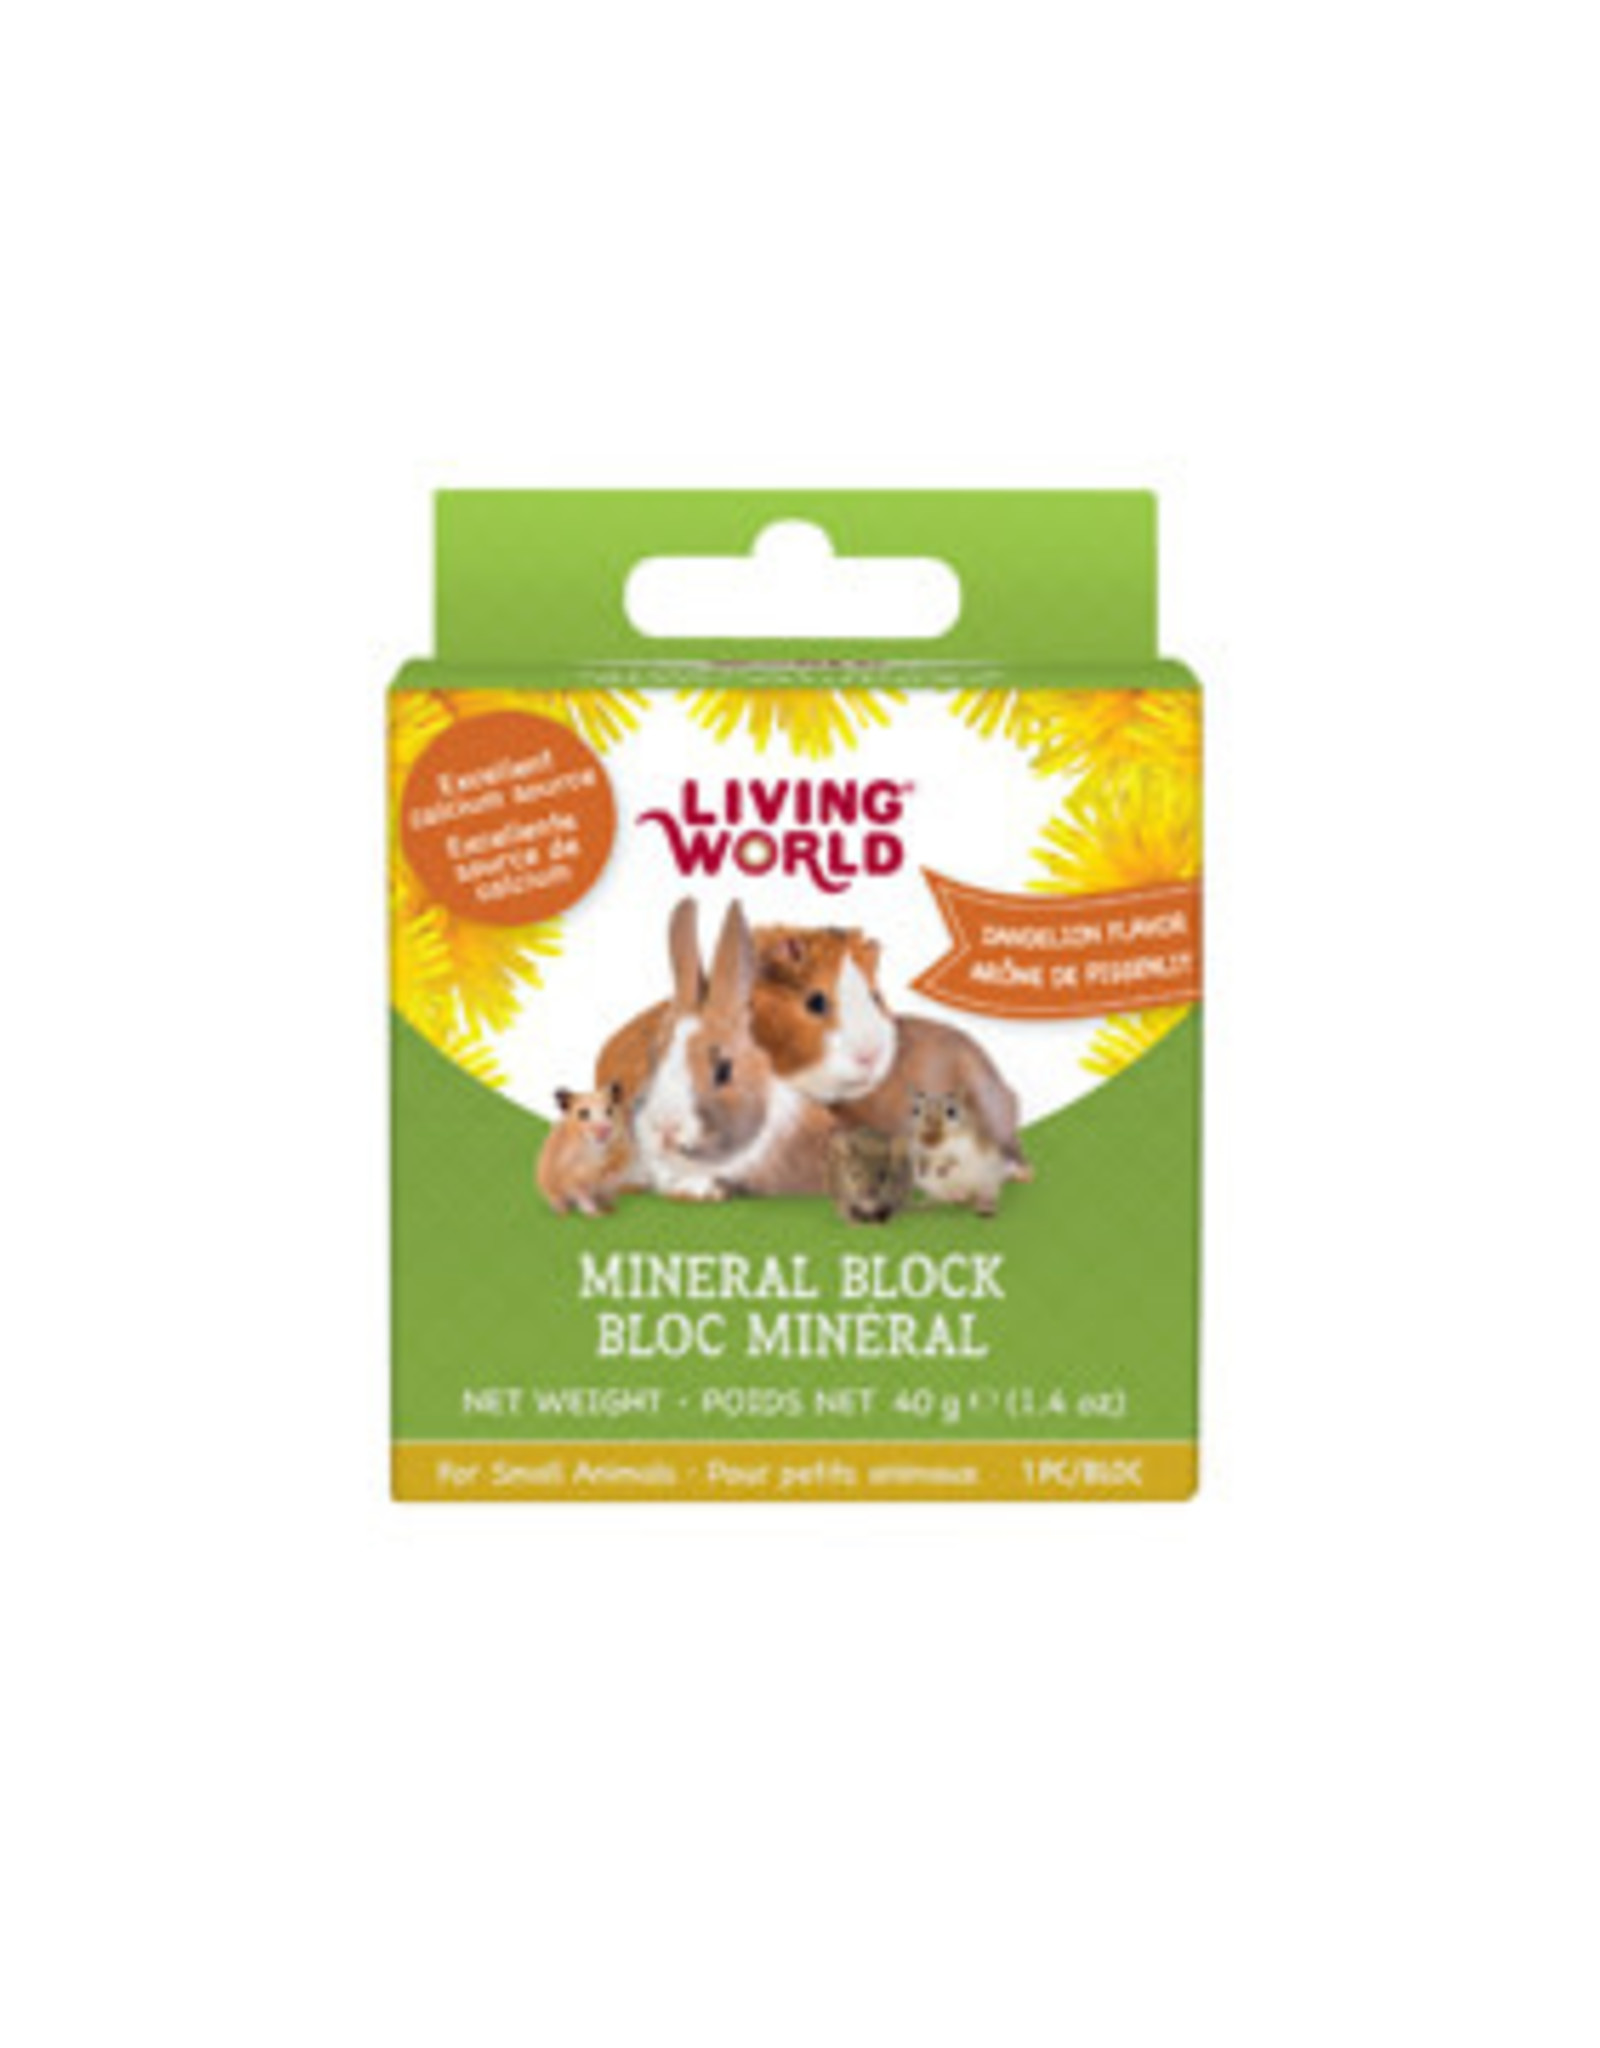 LIVING WORLD Living World Small Animal Mineral Blocks - Dandelion Flavour - Small - 40 g (1.4 oz)